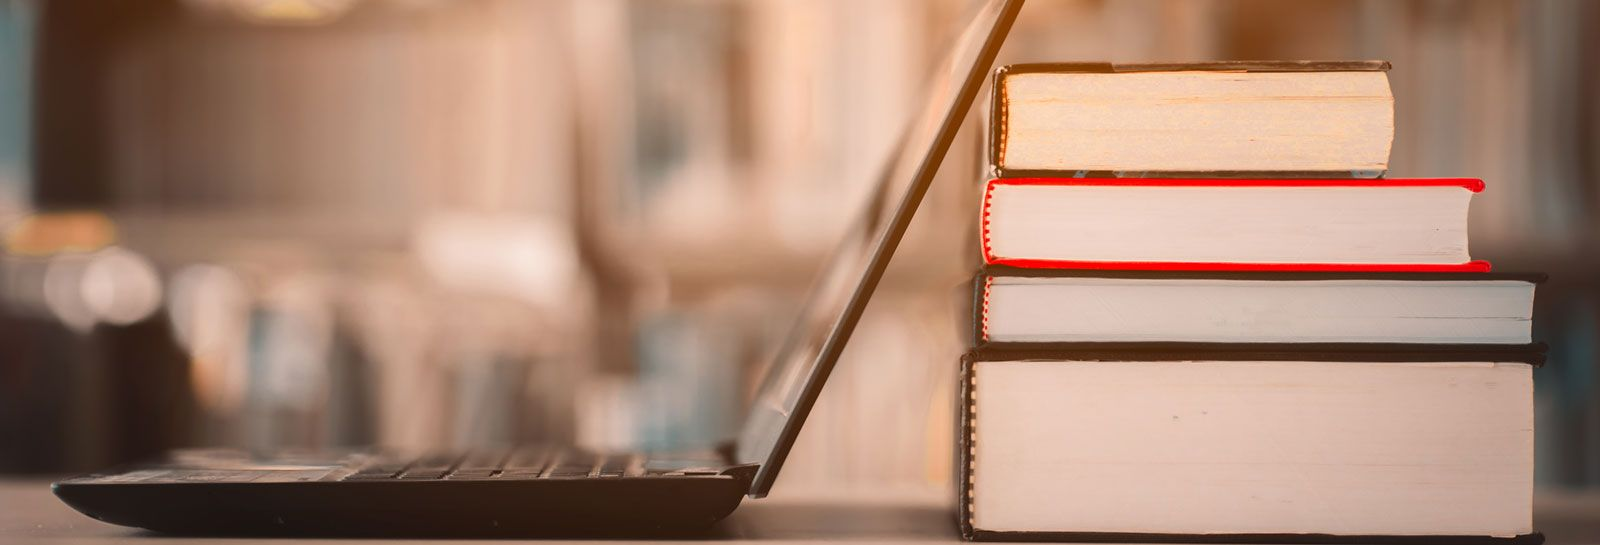 Laptop and books banner image